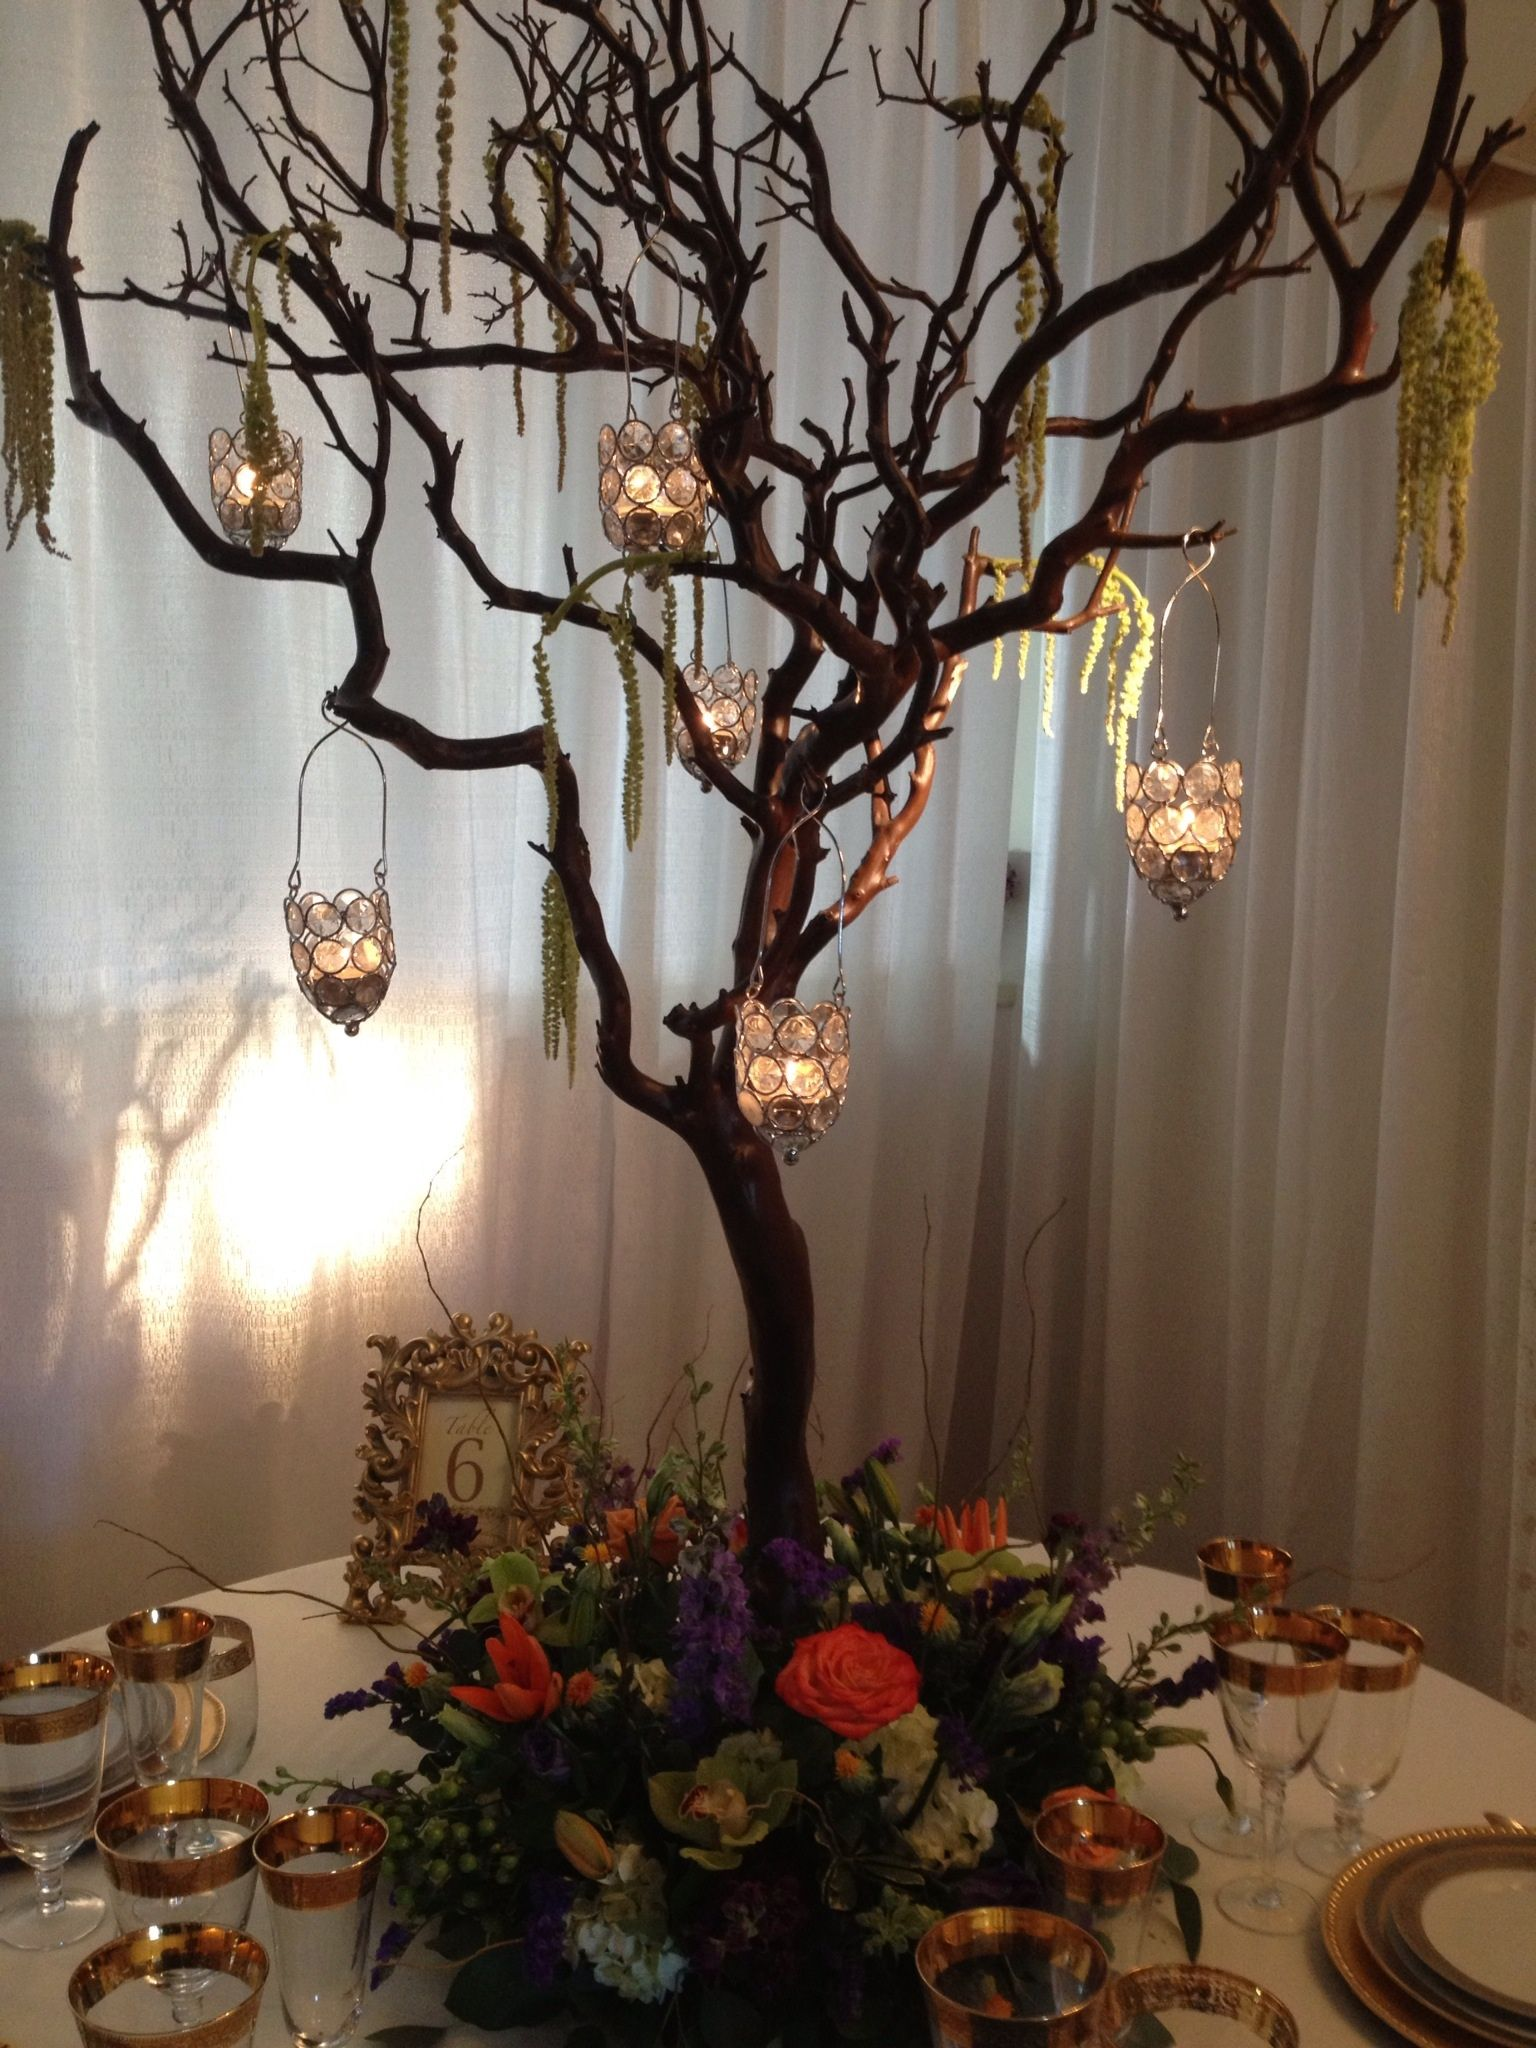 Pin By Michael Plociniak On Custom Decor Black Branch Centerpieces Black Centerpieces Branch Centerpieces